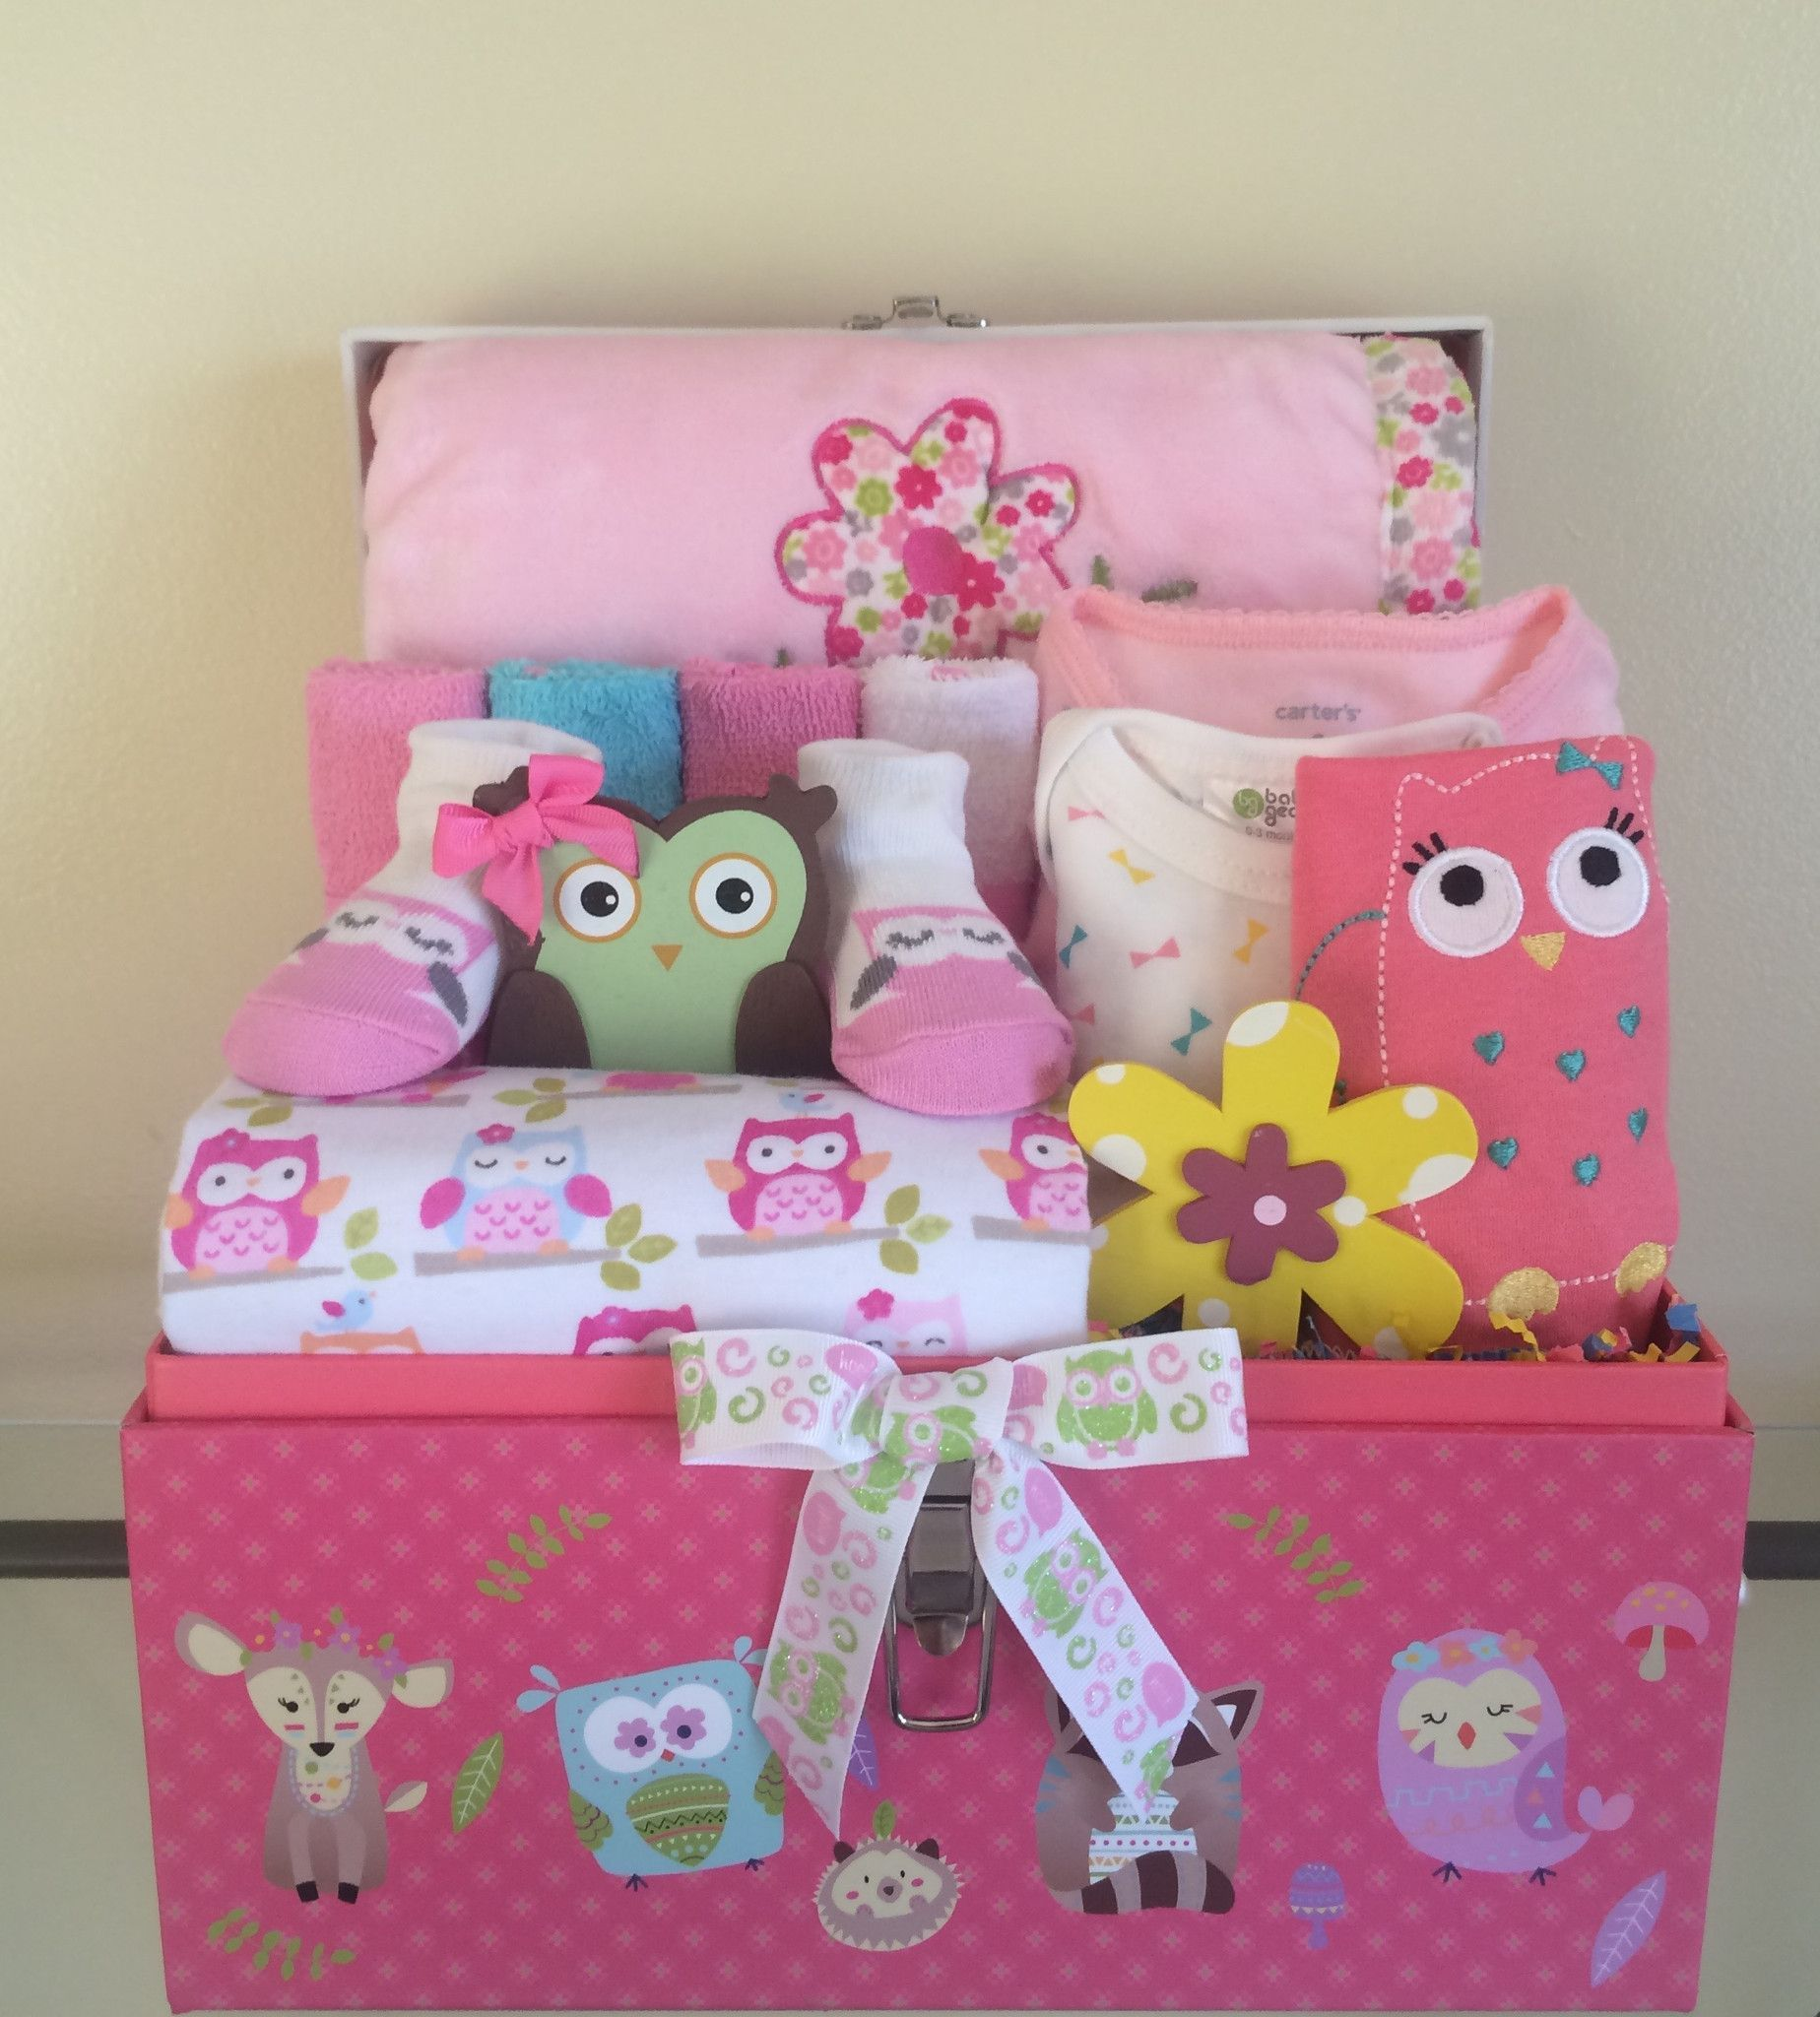 """This cute pink elephant and jungle friends gift basket includes: 34 size 1 Huggies diapers in base of basket, 1 receiving blanket, soft plush large pink/white zebra print blanket with matching zebra """""""